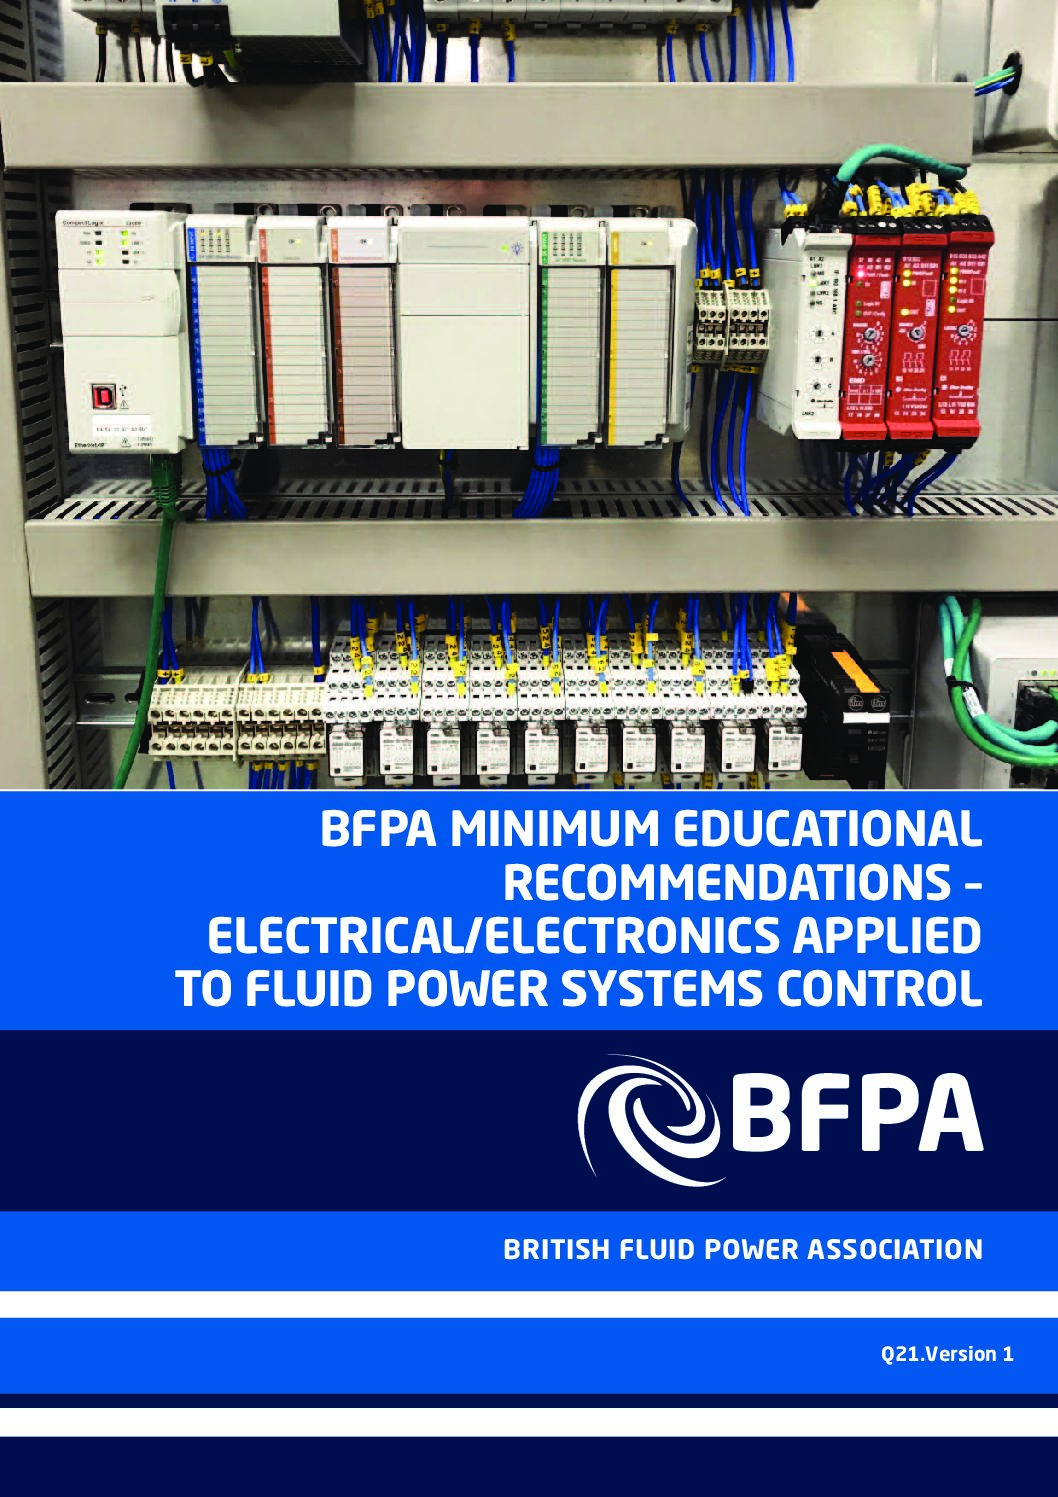 BFPA Minimum Educational Recommendations – Electrical/Electronic Applied to Fluid Power Systems Control